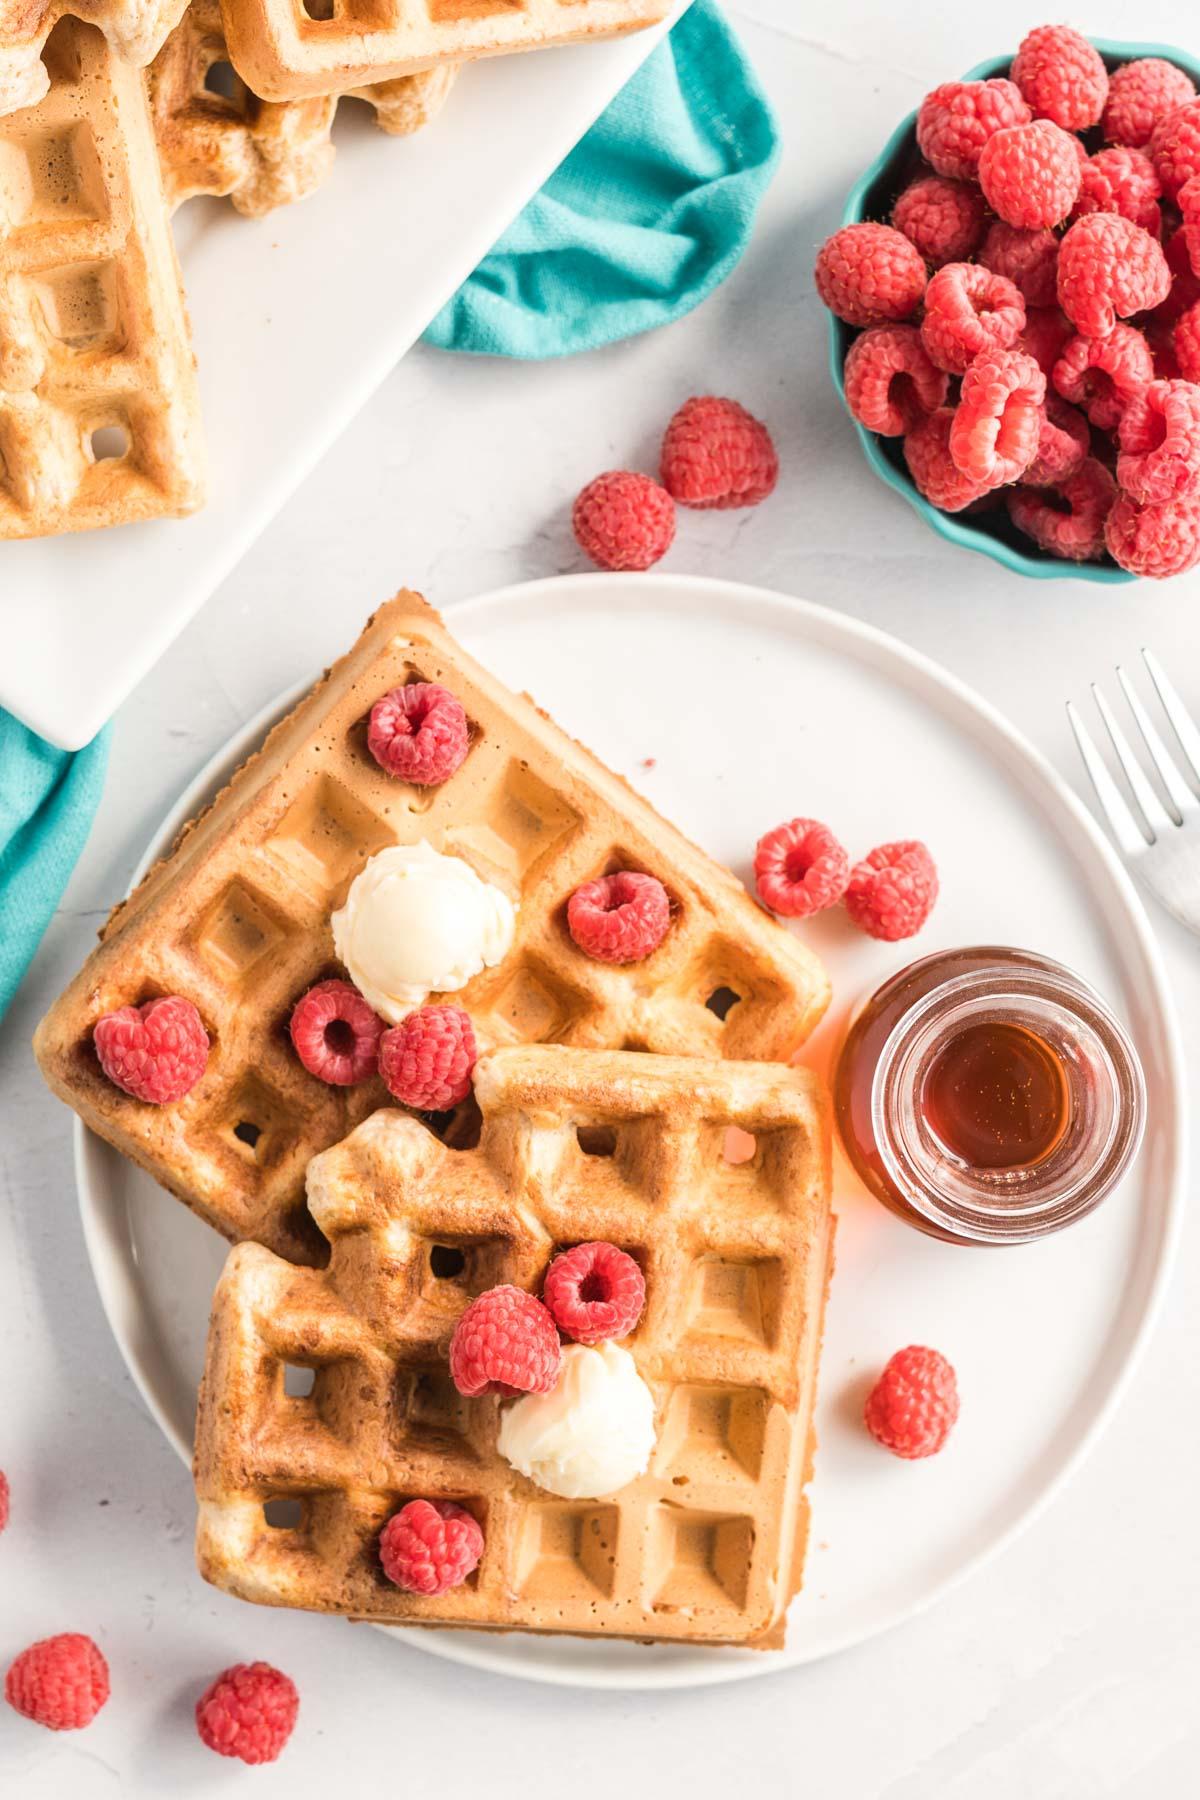 Two waffles on a plate with butter and raspberries and a small jar of syrup.